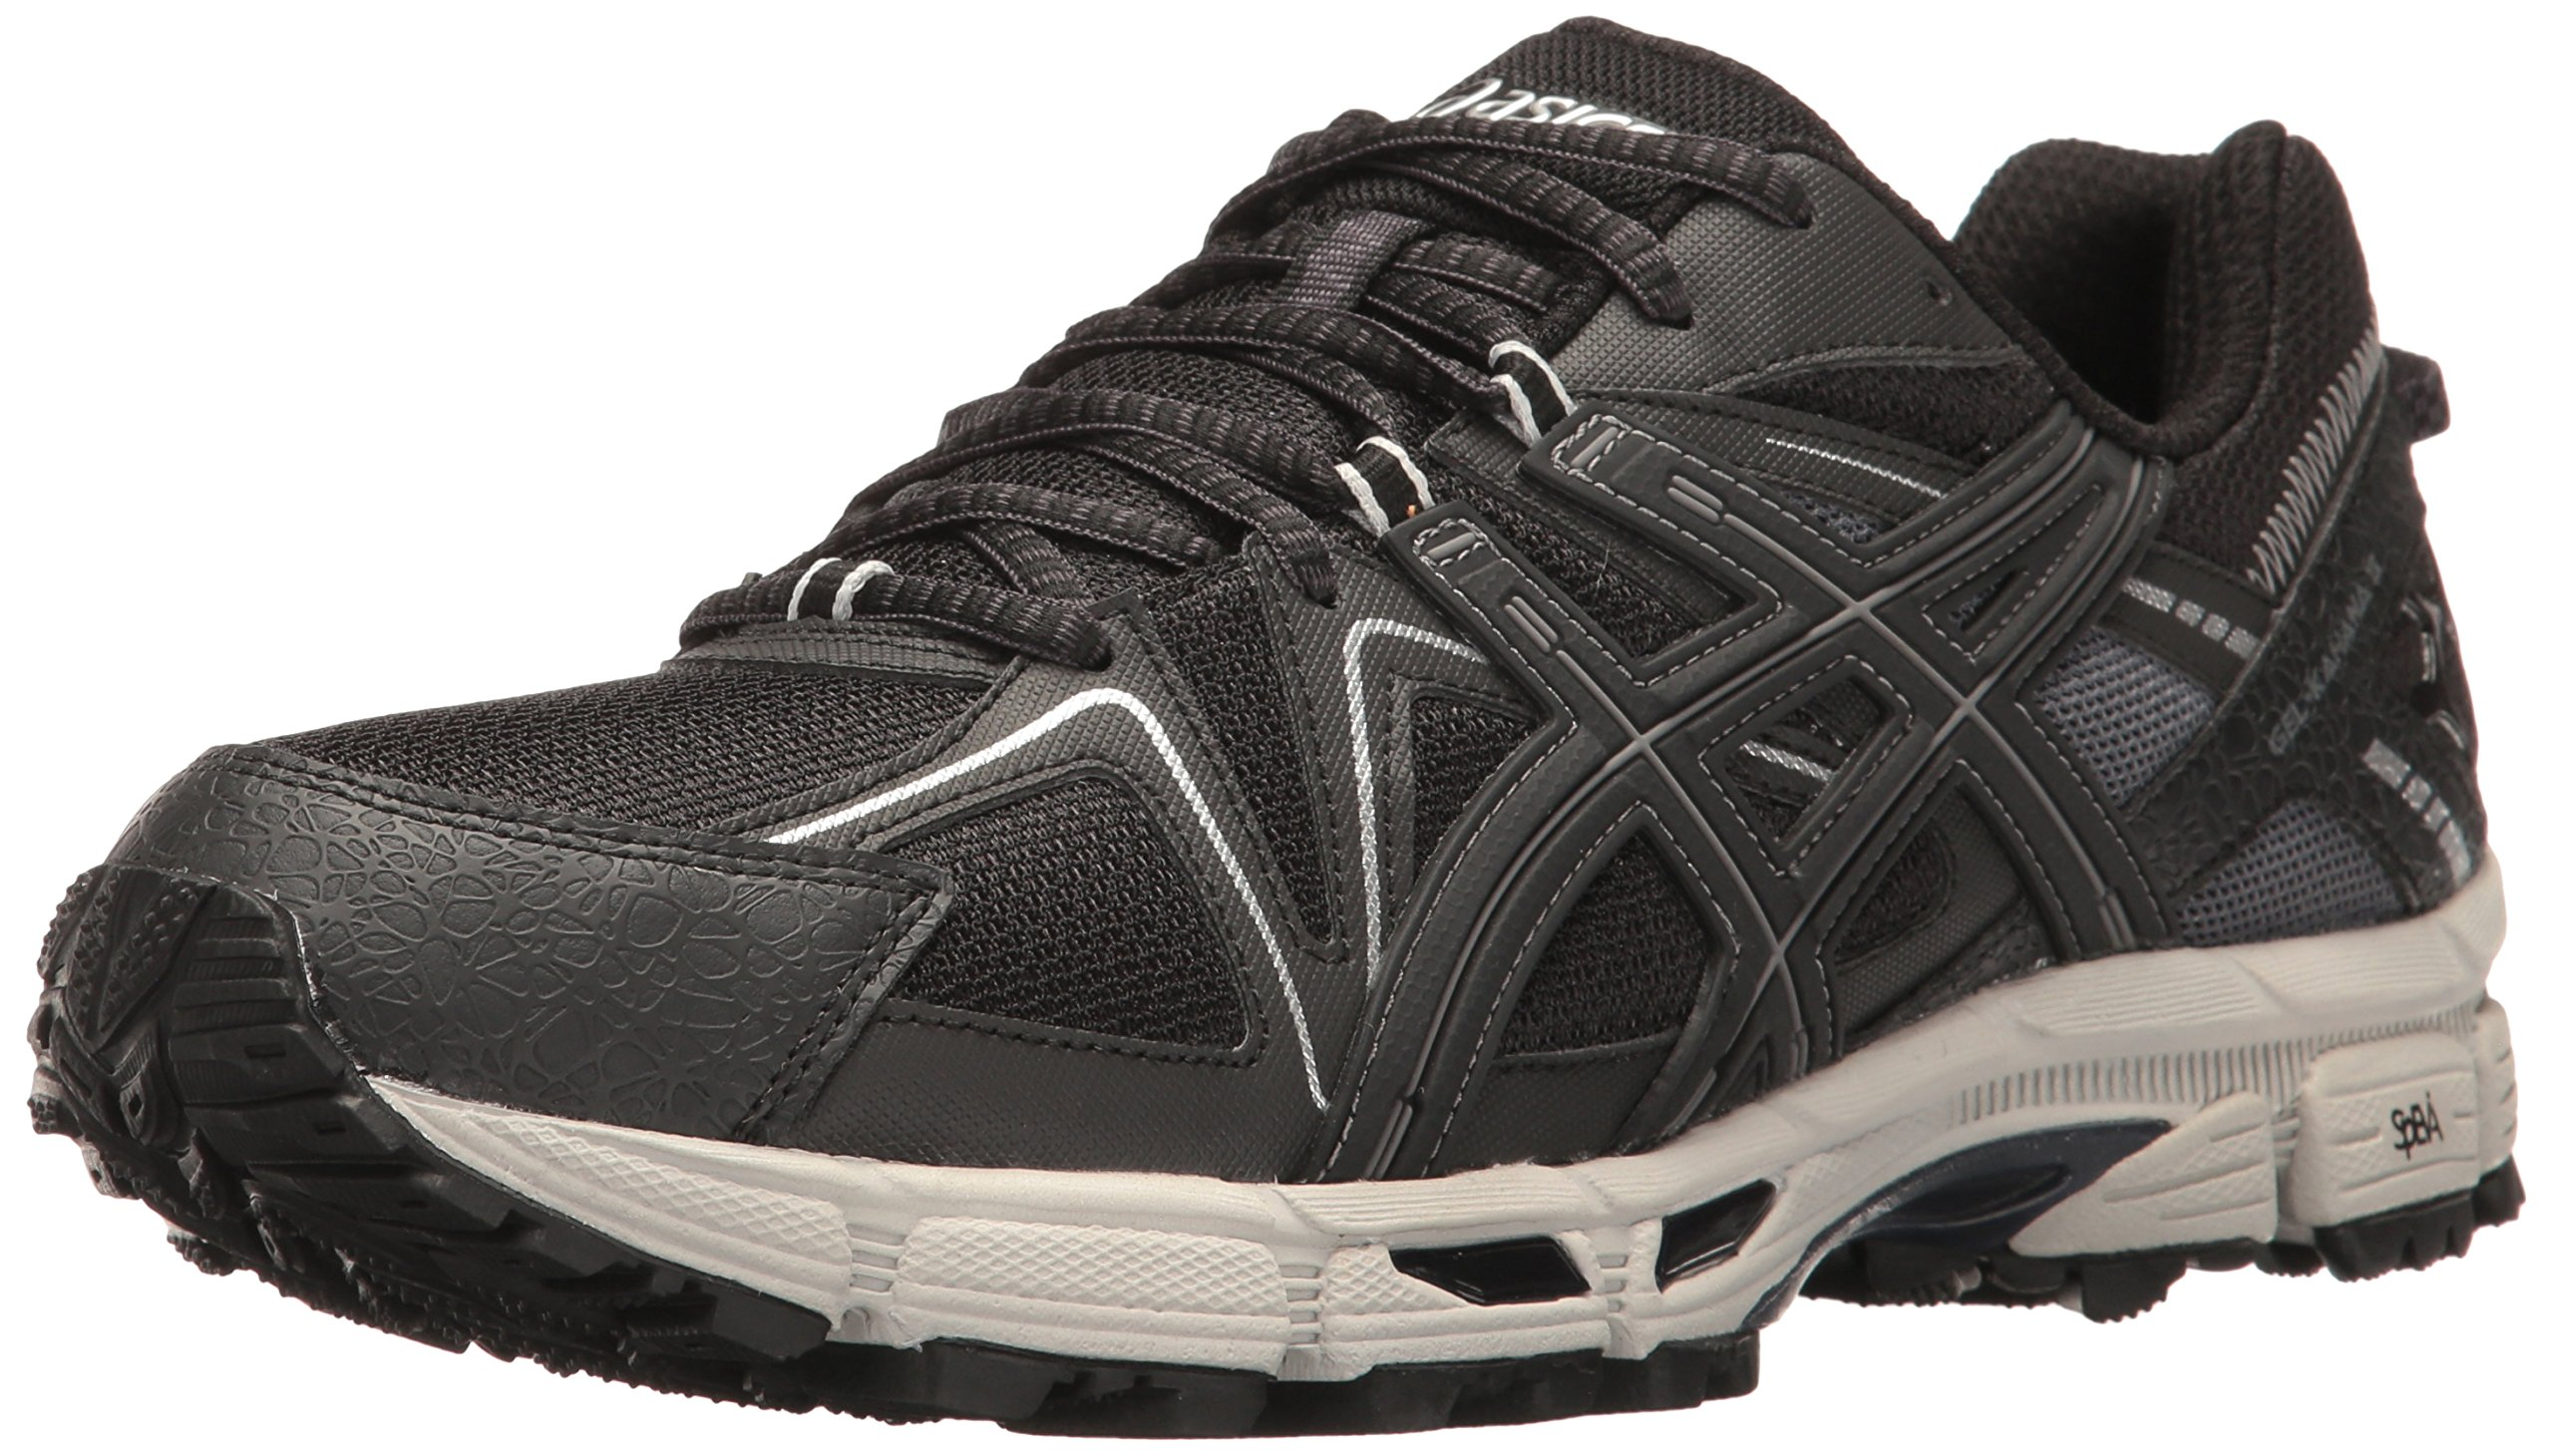 ASICS Men's Gel-Kahana 8 Trail Runner, Black/Onyx/Silver, 8.5 M US by ASICS